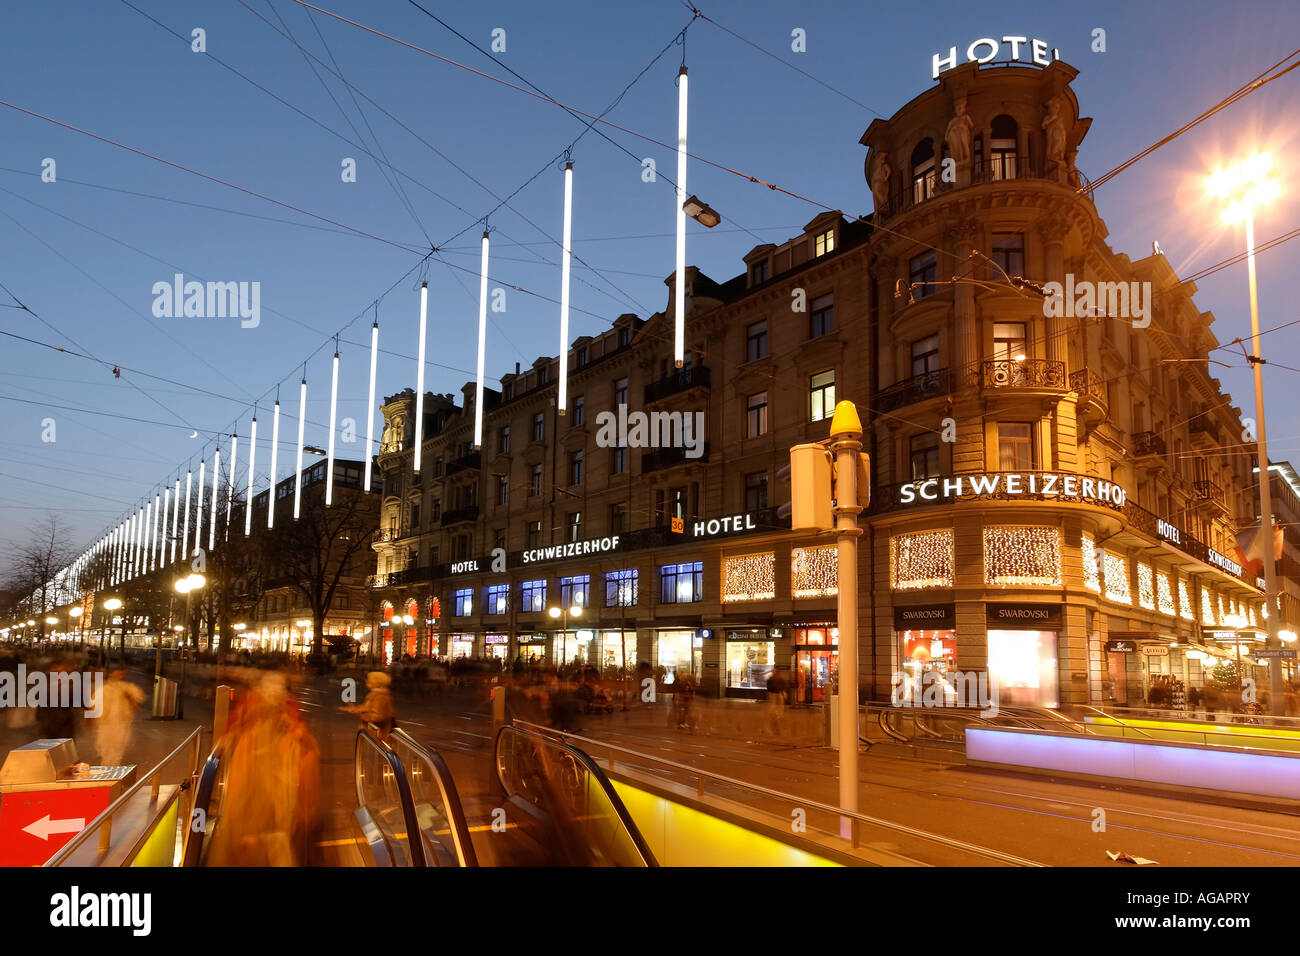 Switzerland Zurich Bahnhofstrasse at twilight Chistmas illumination Hotel Schweizer Hof - Stock Image